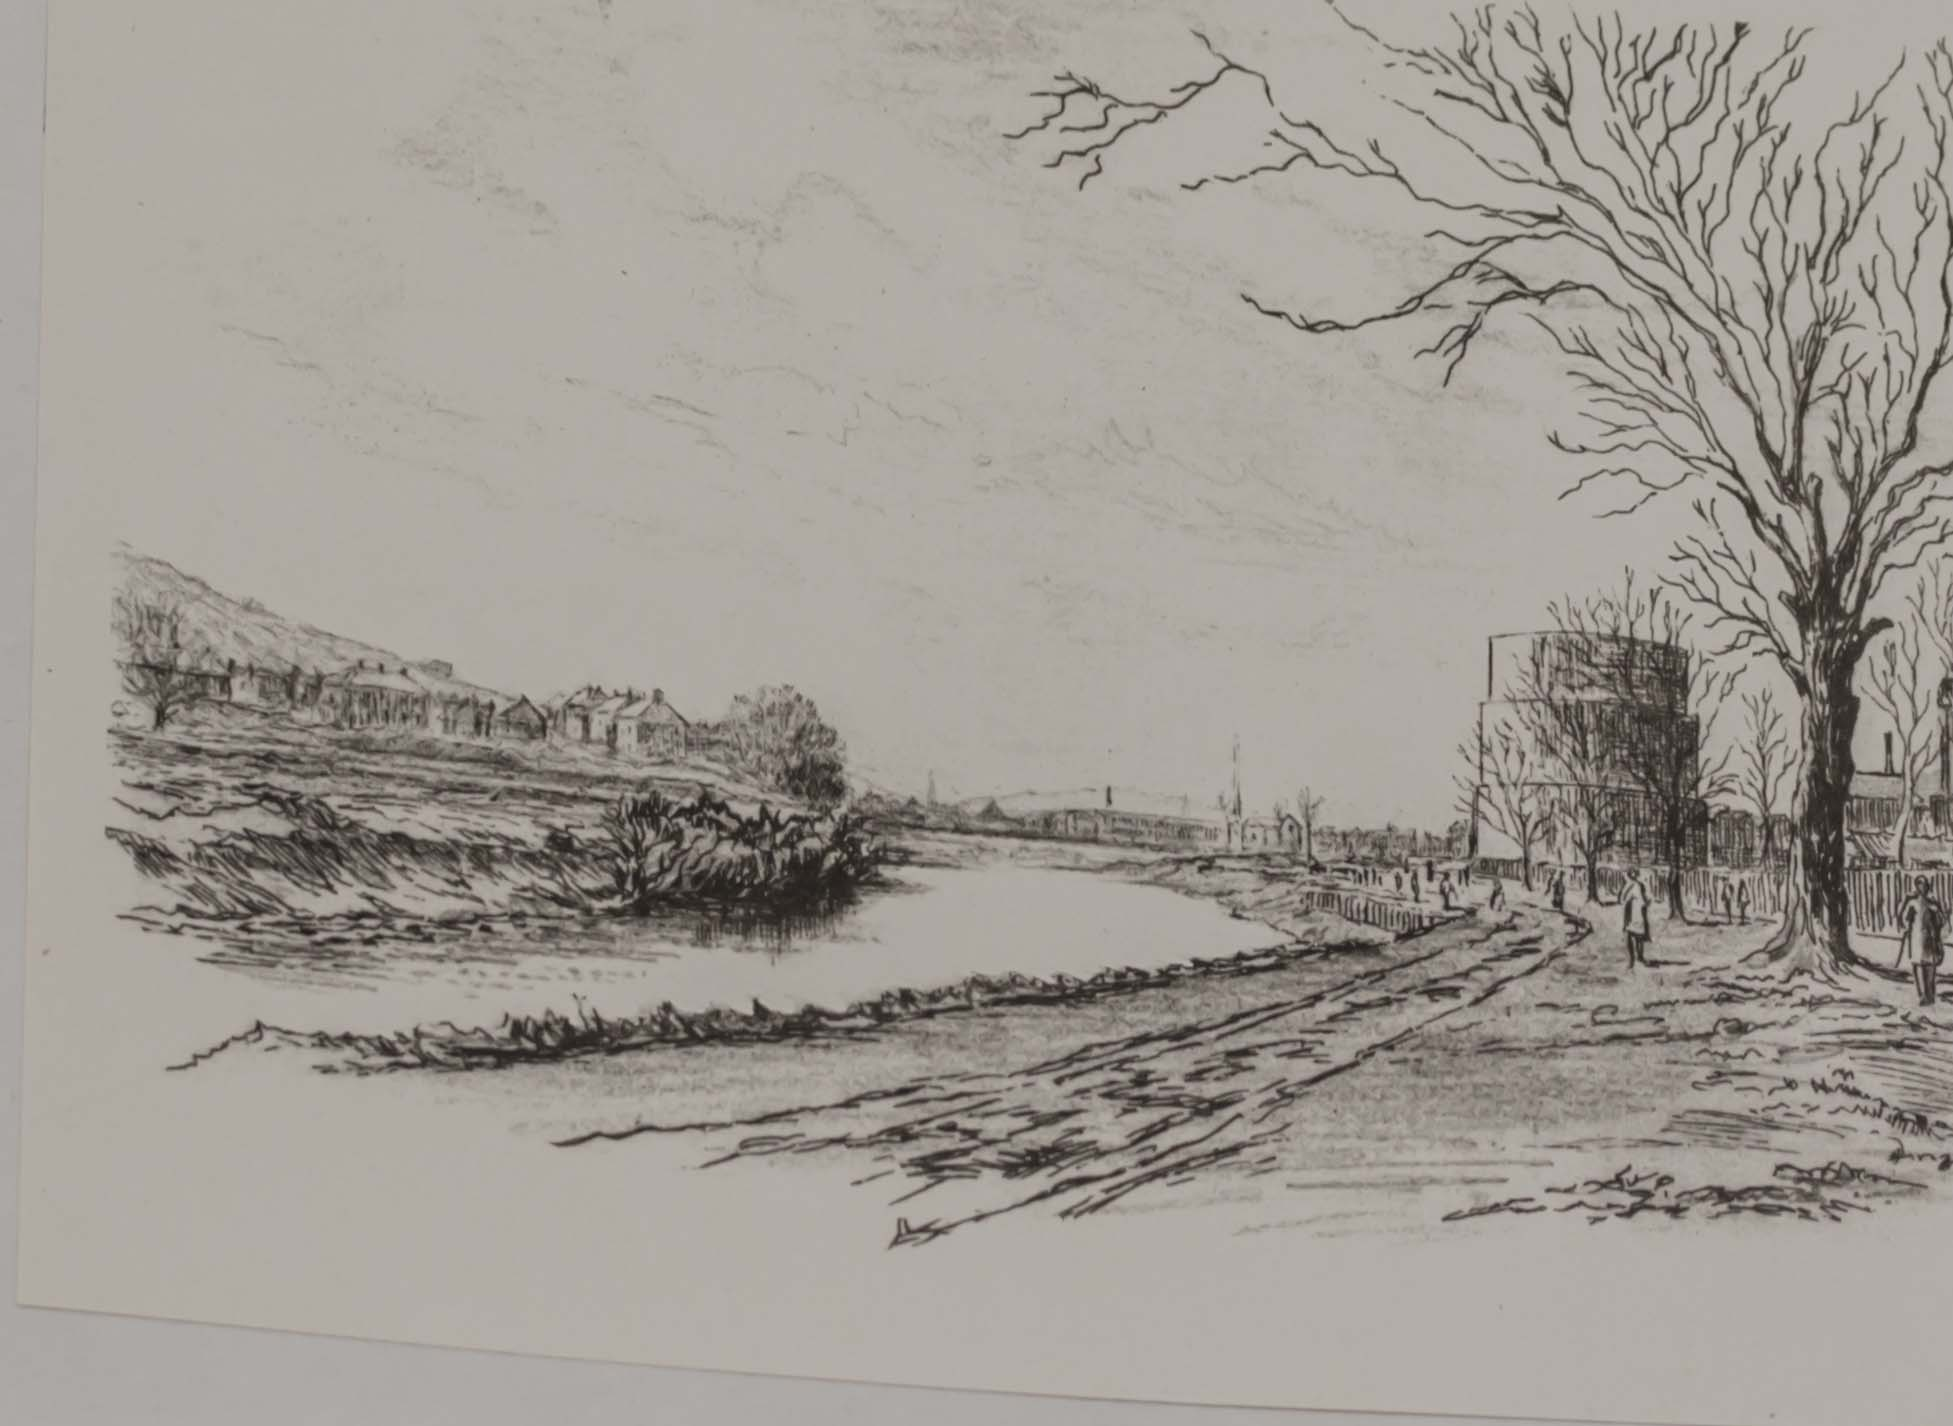 Lot 46 - A limited edition of 'Teviot Reaches' sketched and etched by R M Taylor, printed in 1951 #45/250.